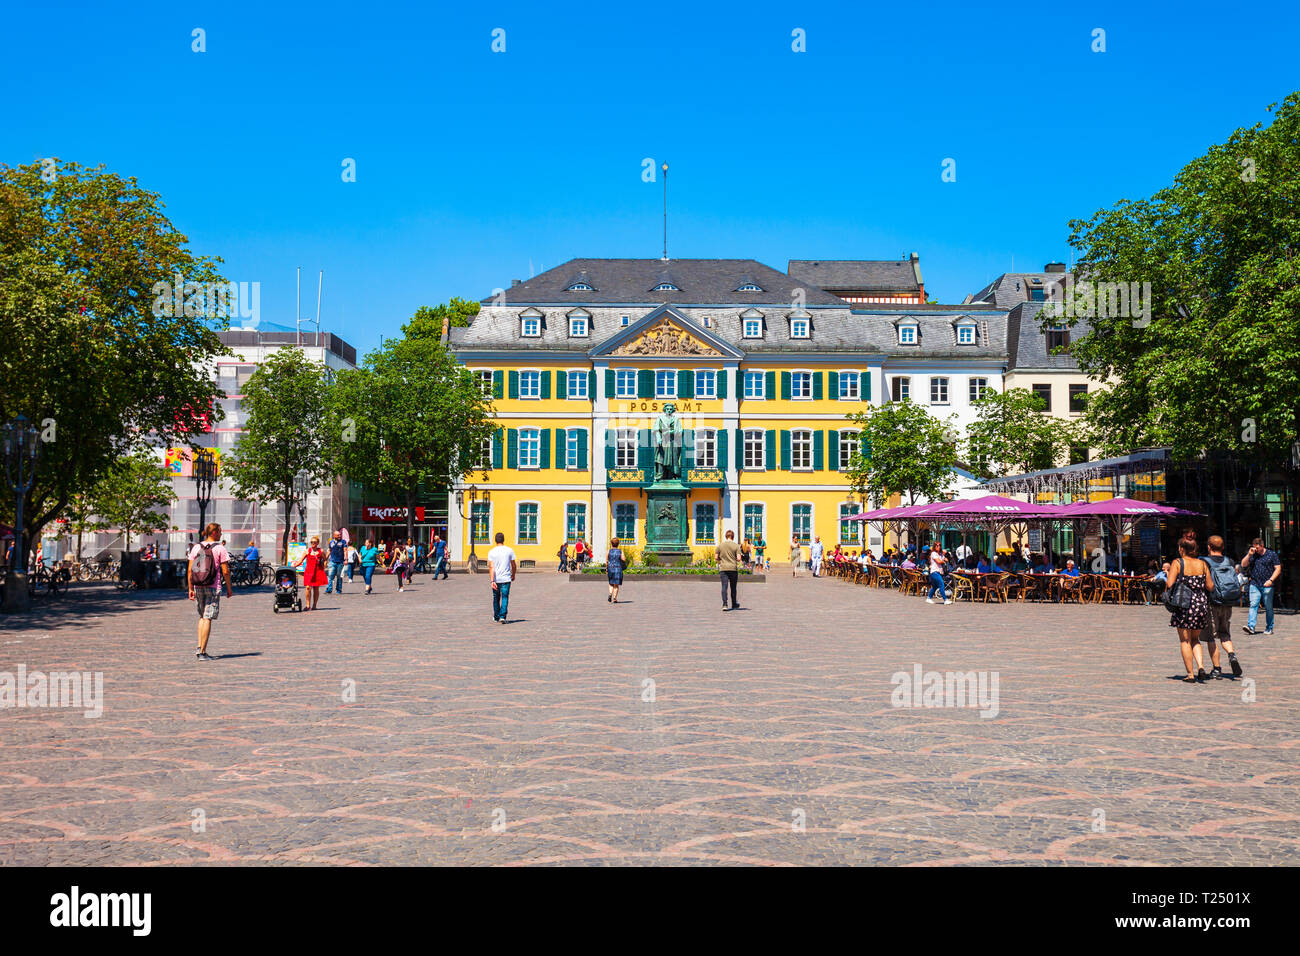 BONN, GERMANY - JUNE 29, 2018: Ludwig van Beethoven monument and post office in the centre of Bonn city in Germany Stock Photo